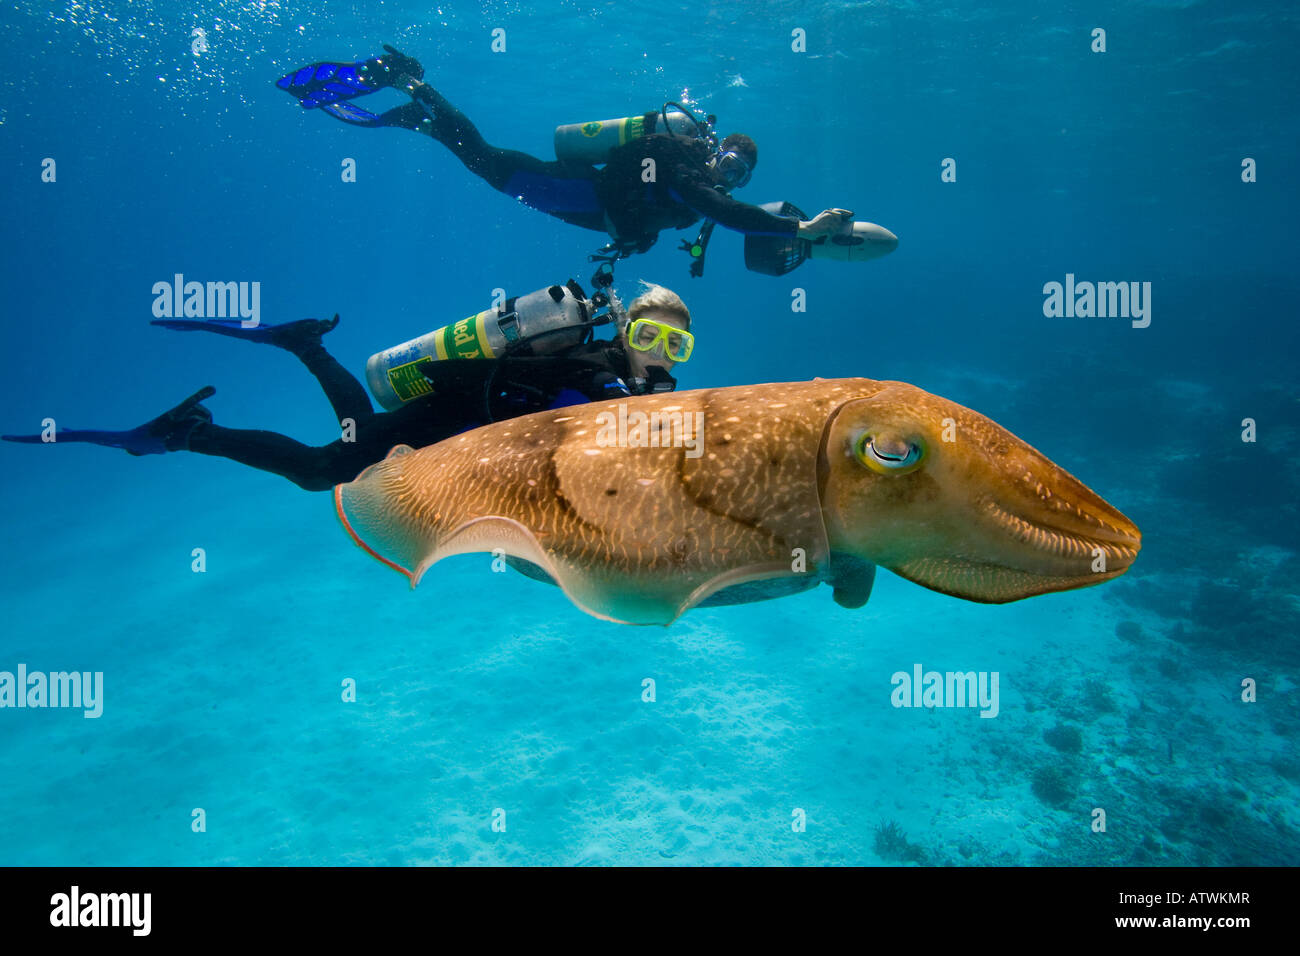 Divers on underwater scooters and a common cuttlefish, Sepia officinalis, in Palau, Micronesia. Stock Photo